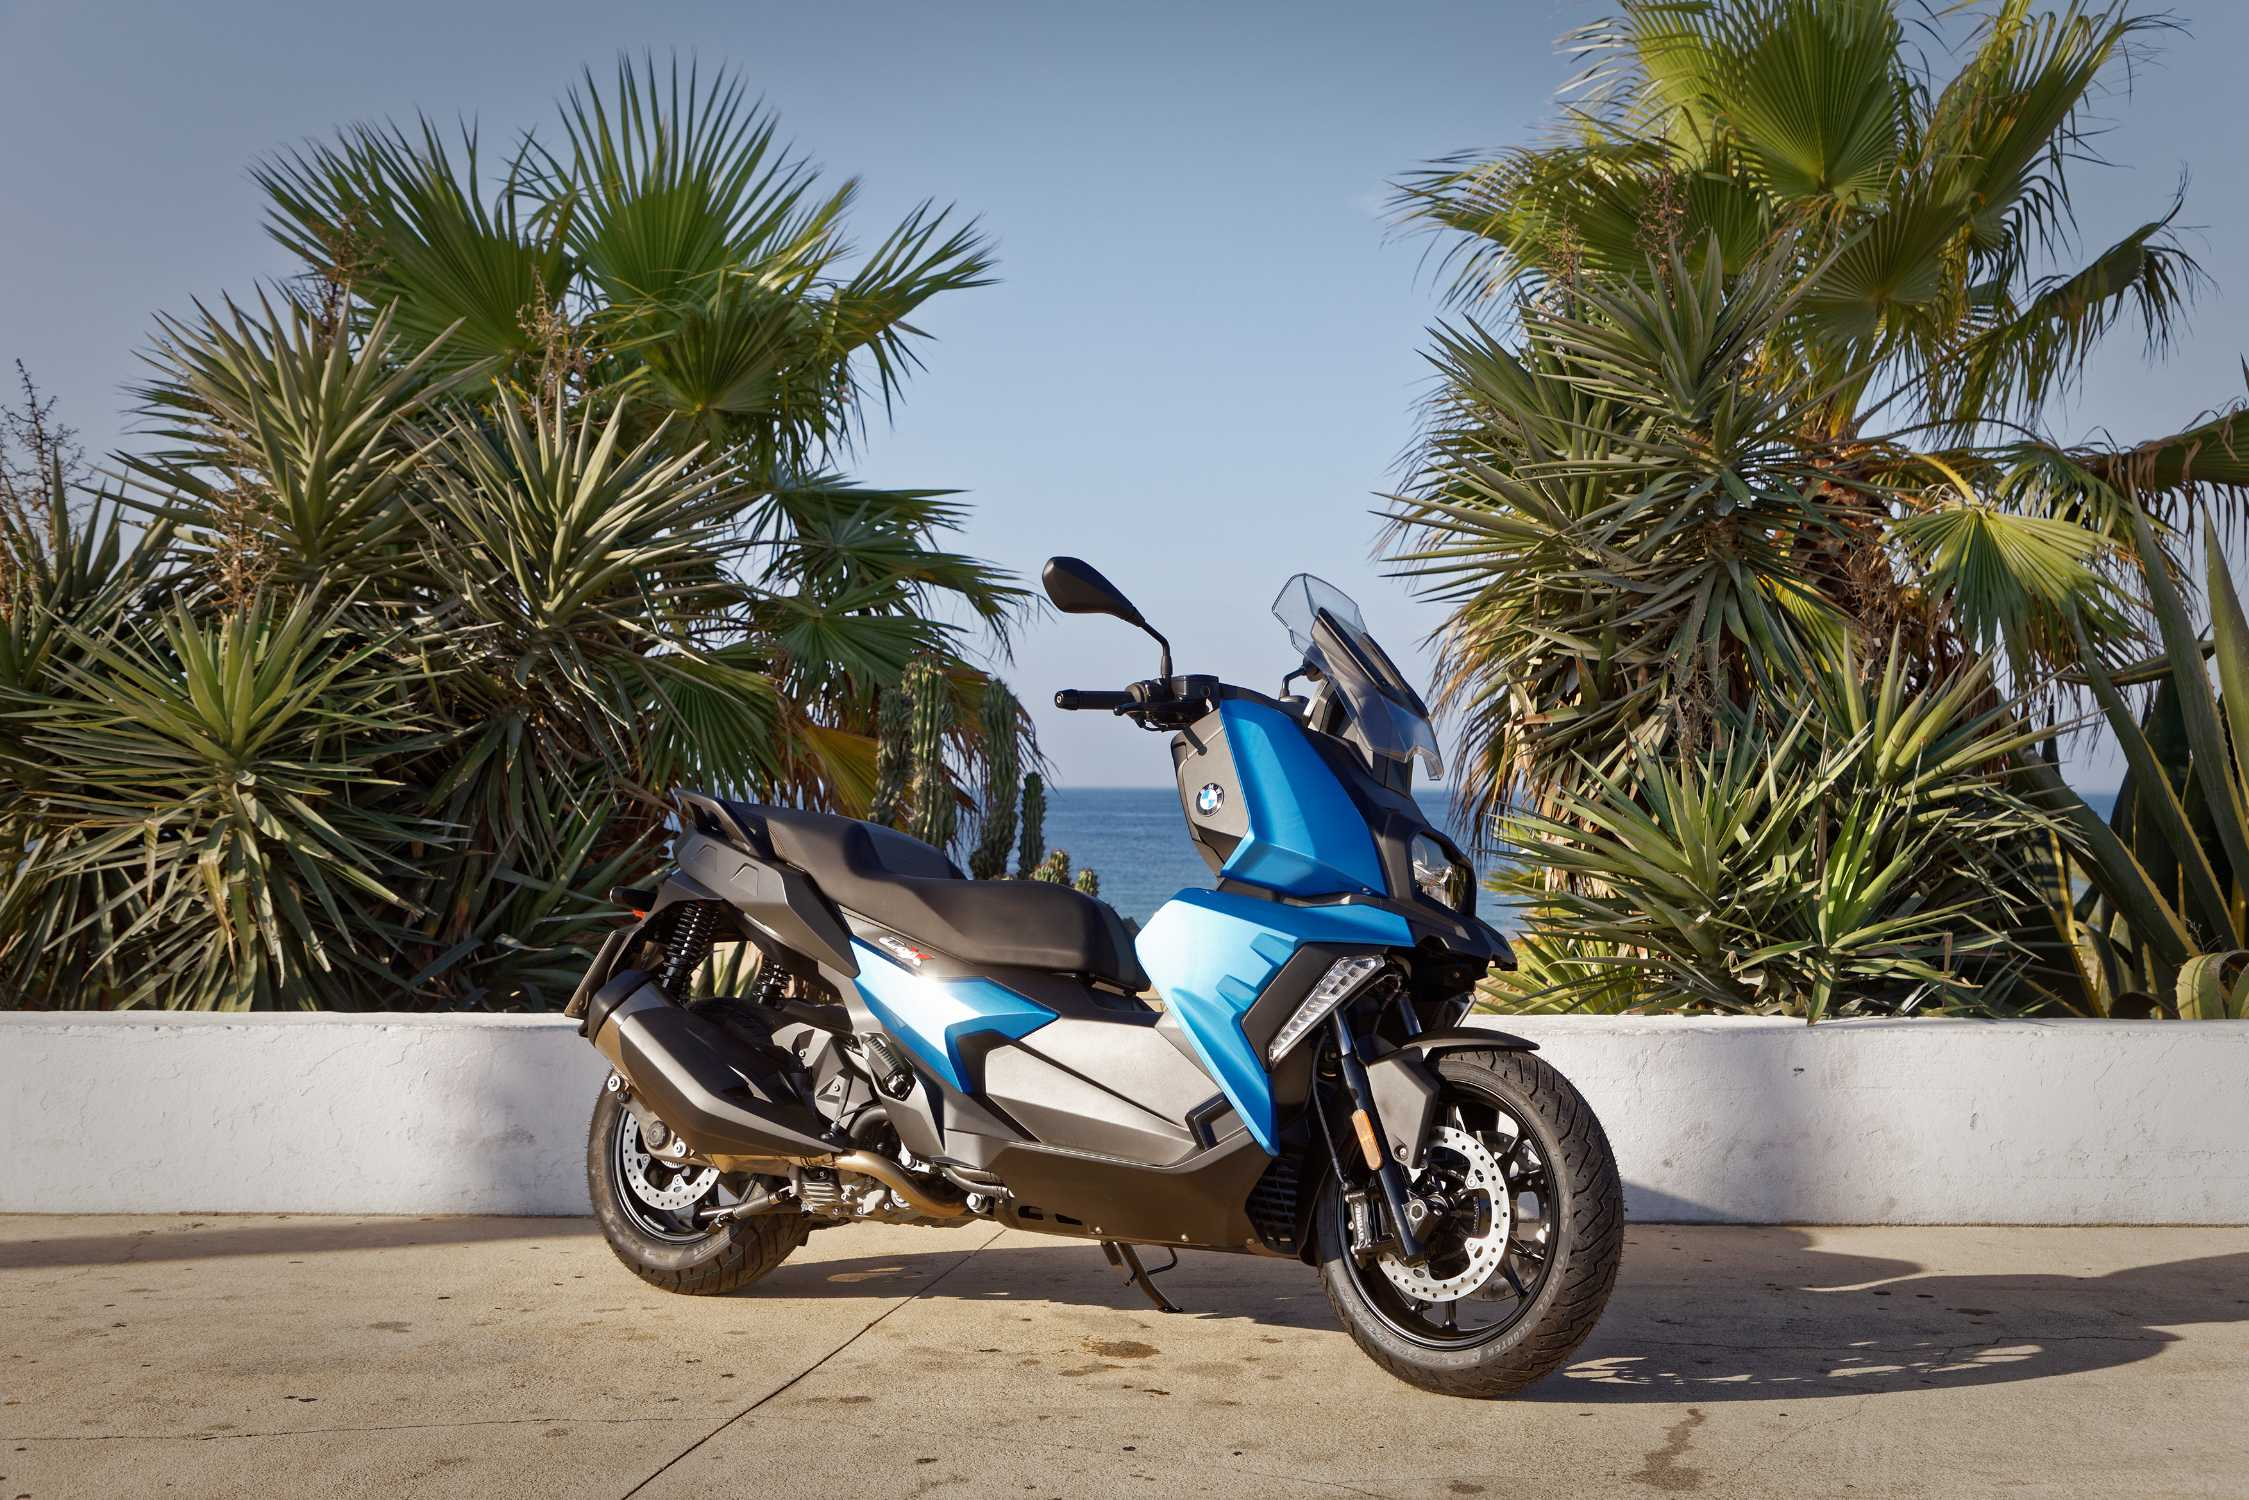 Bmw Motorrad Usa Model Year 2019 Pricing And Equipment Updates